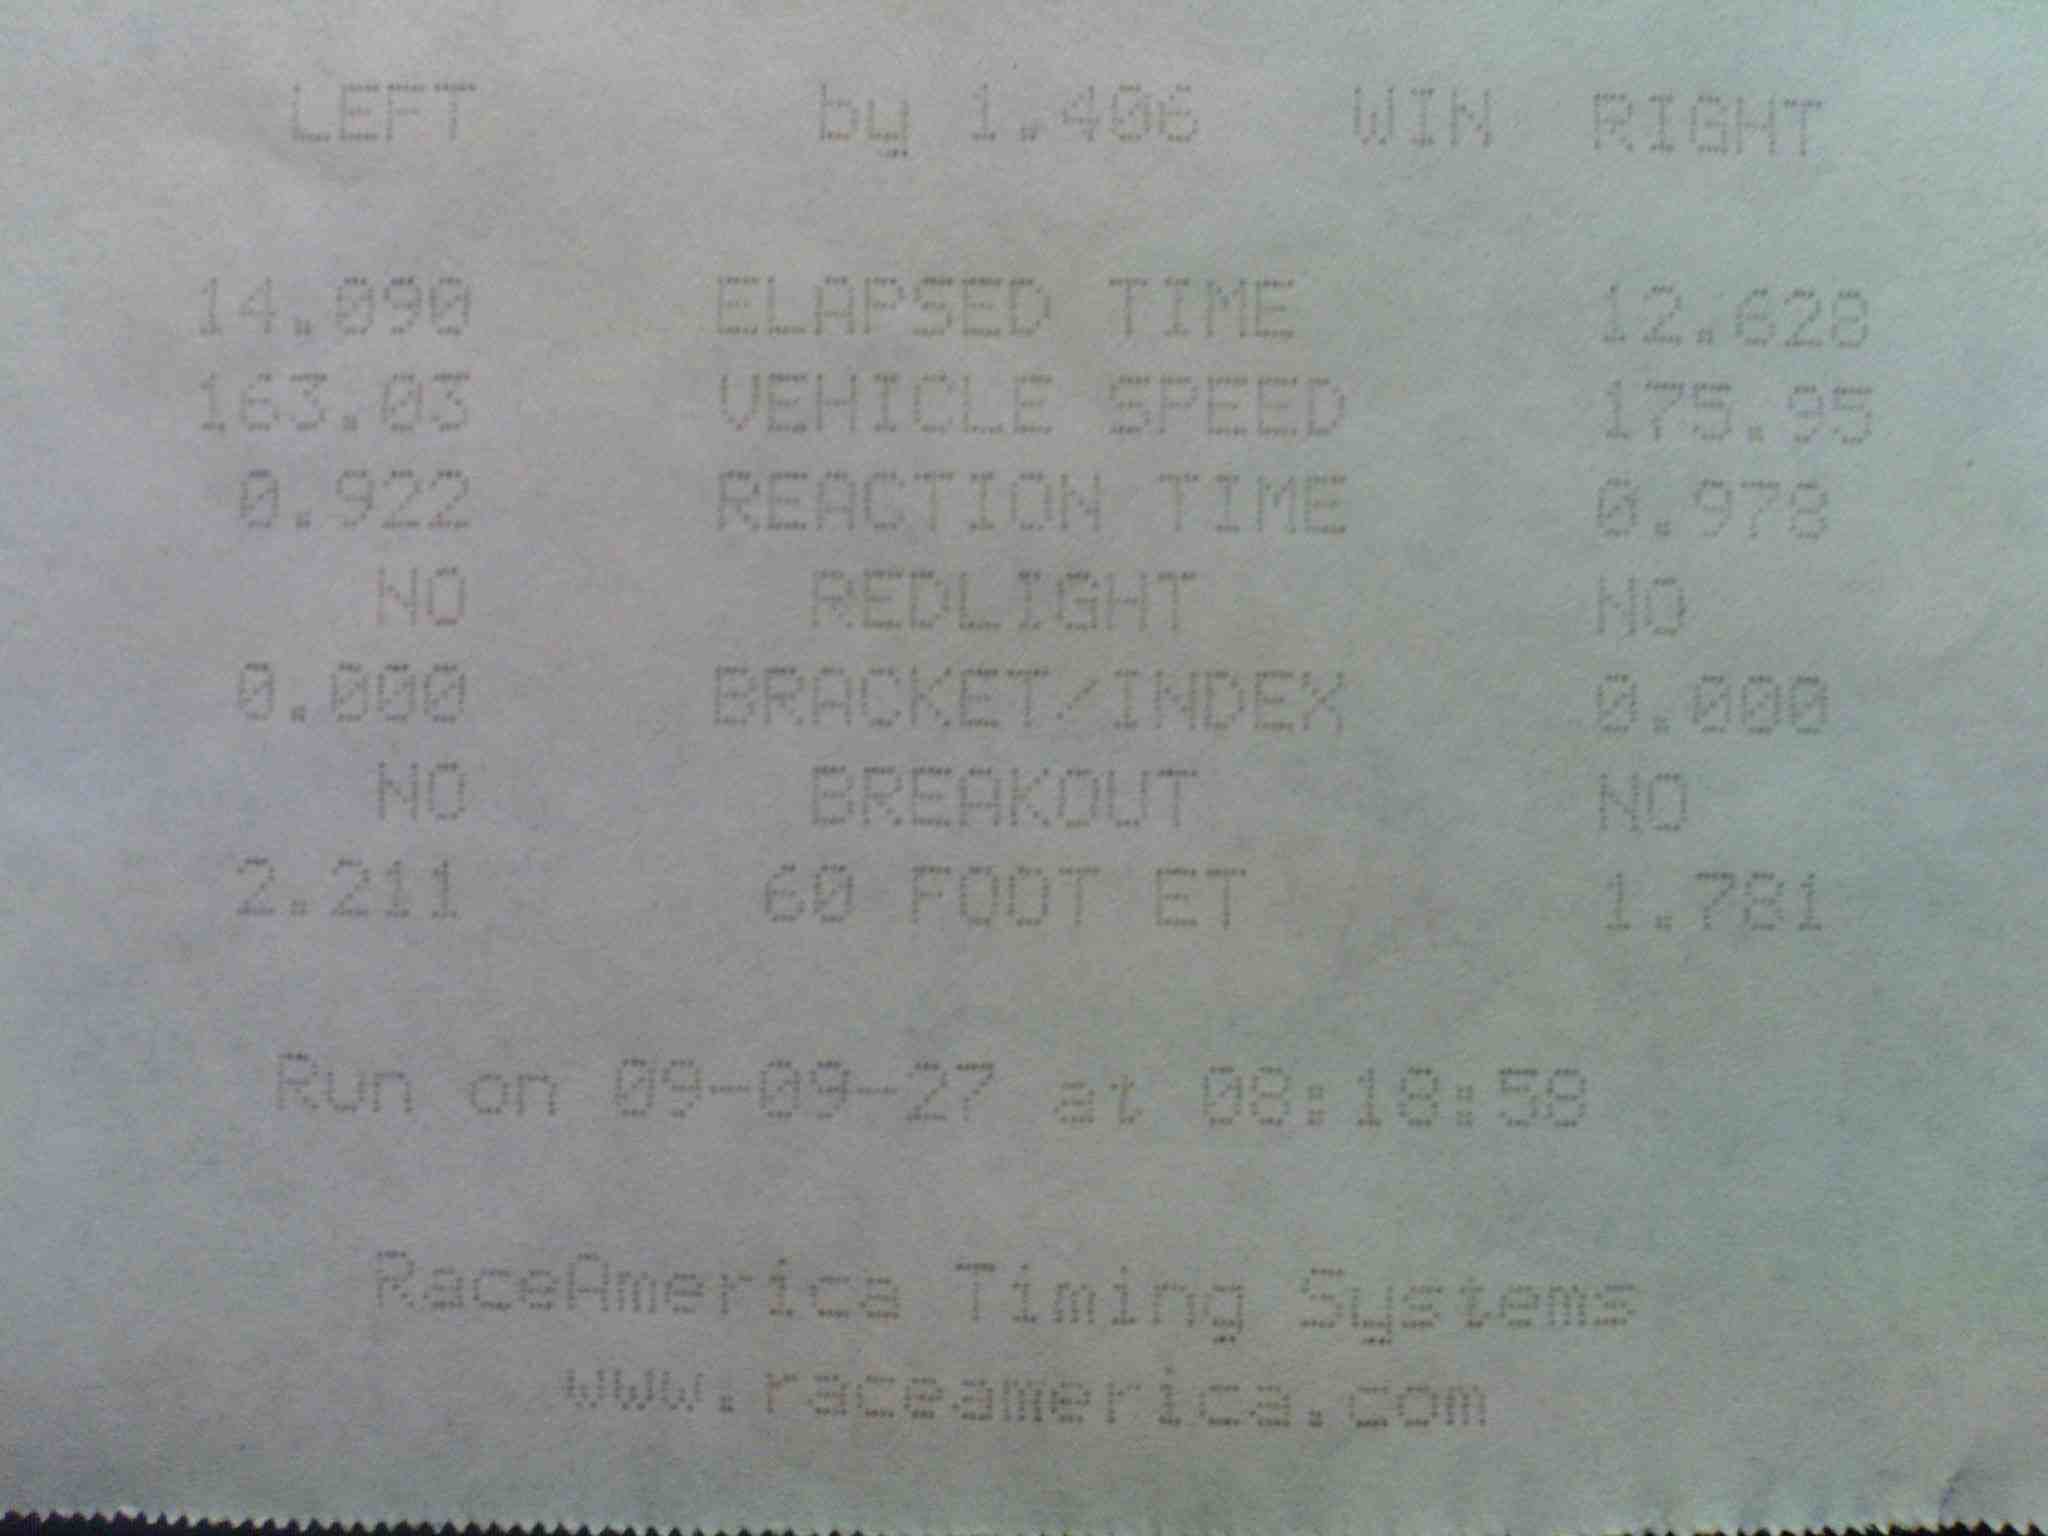 Mercedes-Benz SL500 Timeslip Scan